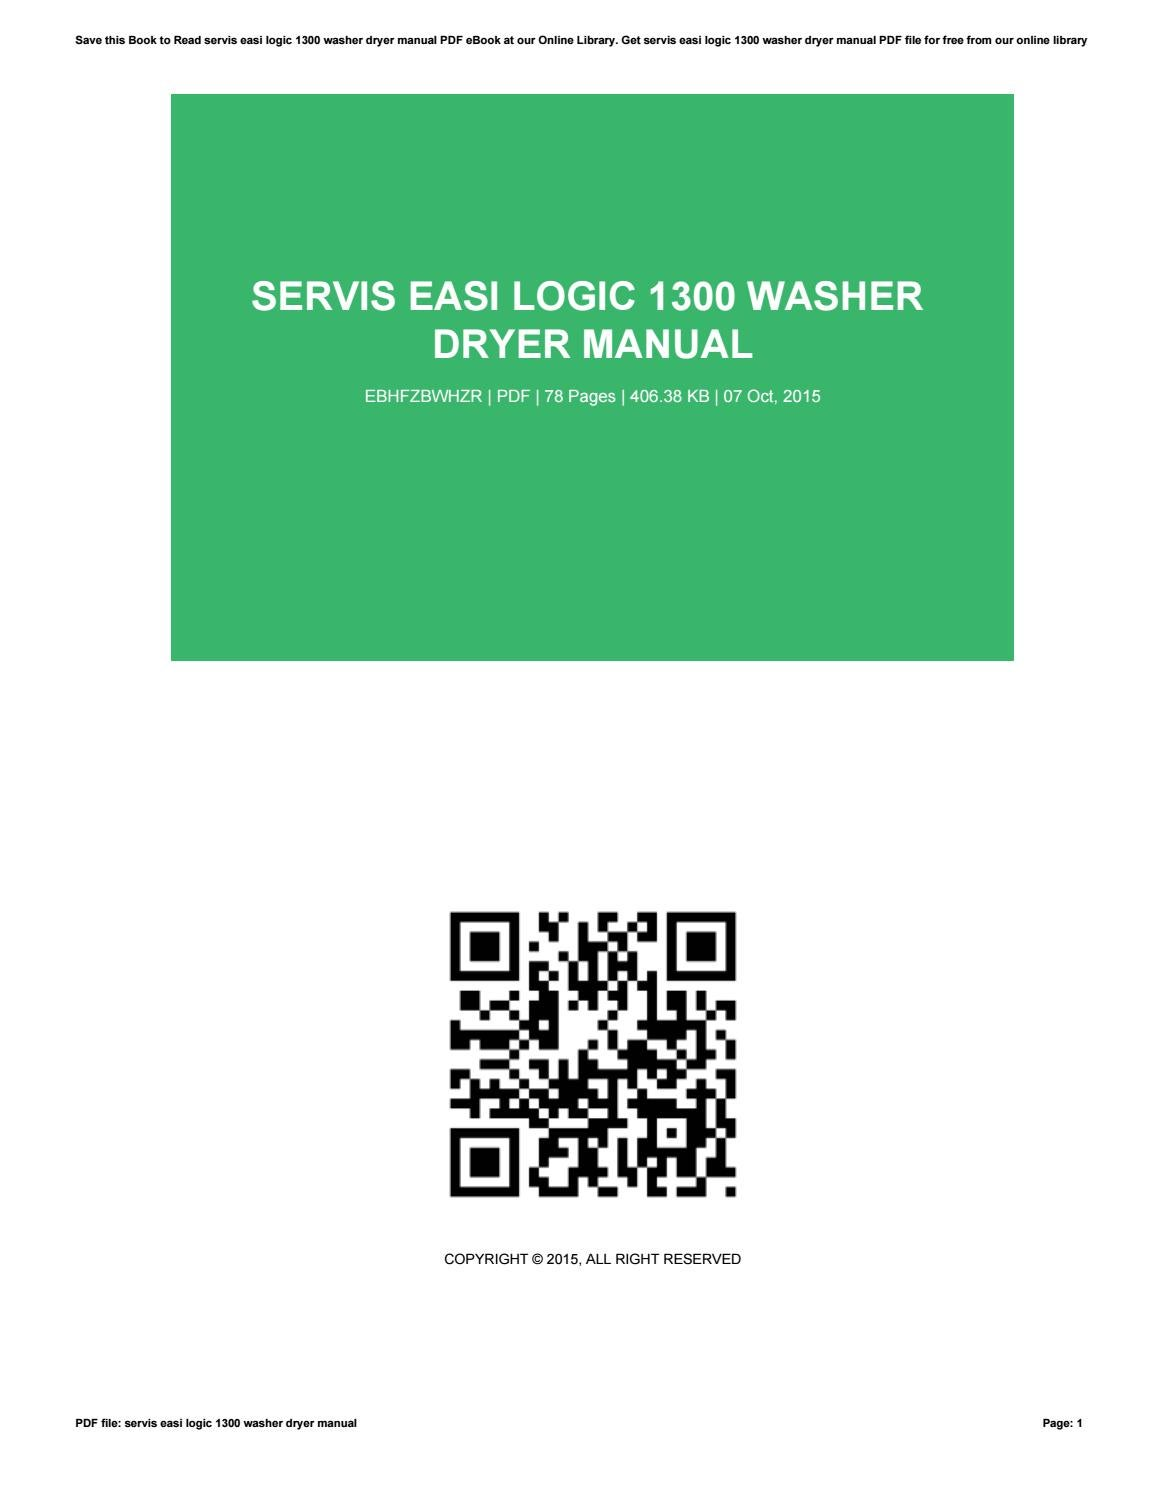 Servis easi logic washer dryer: how to set dryer youtube.